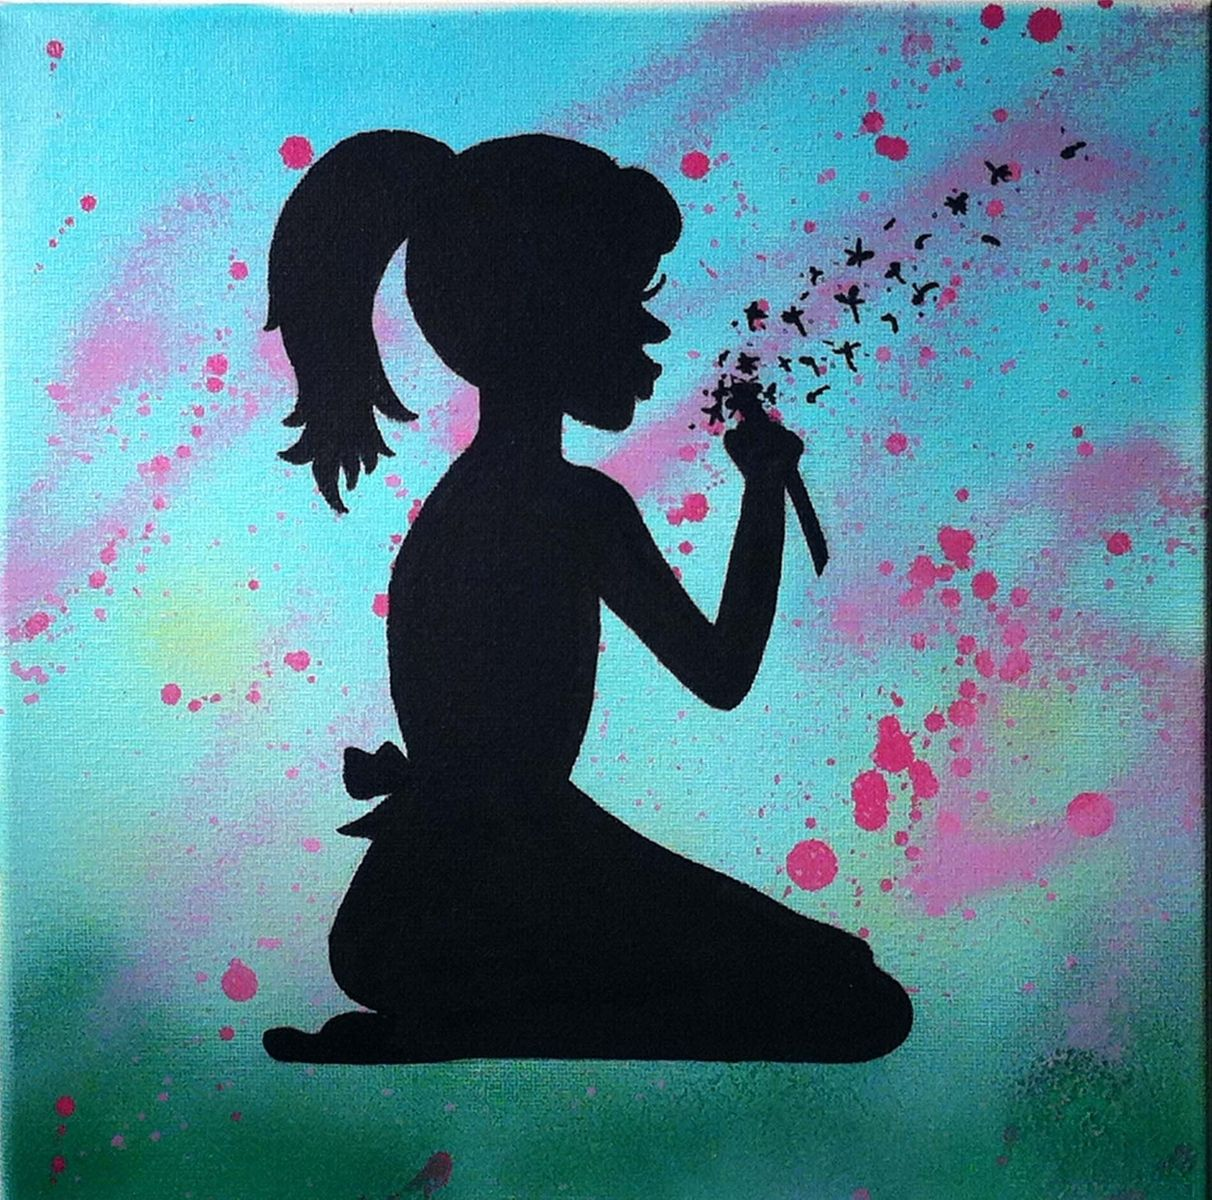 Romantic bedroom ideas for her - Hand Crafted Silhouette Painting On Canvas By Christina